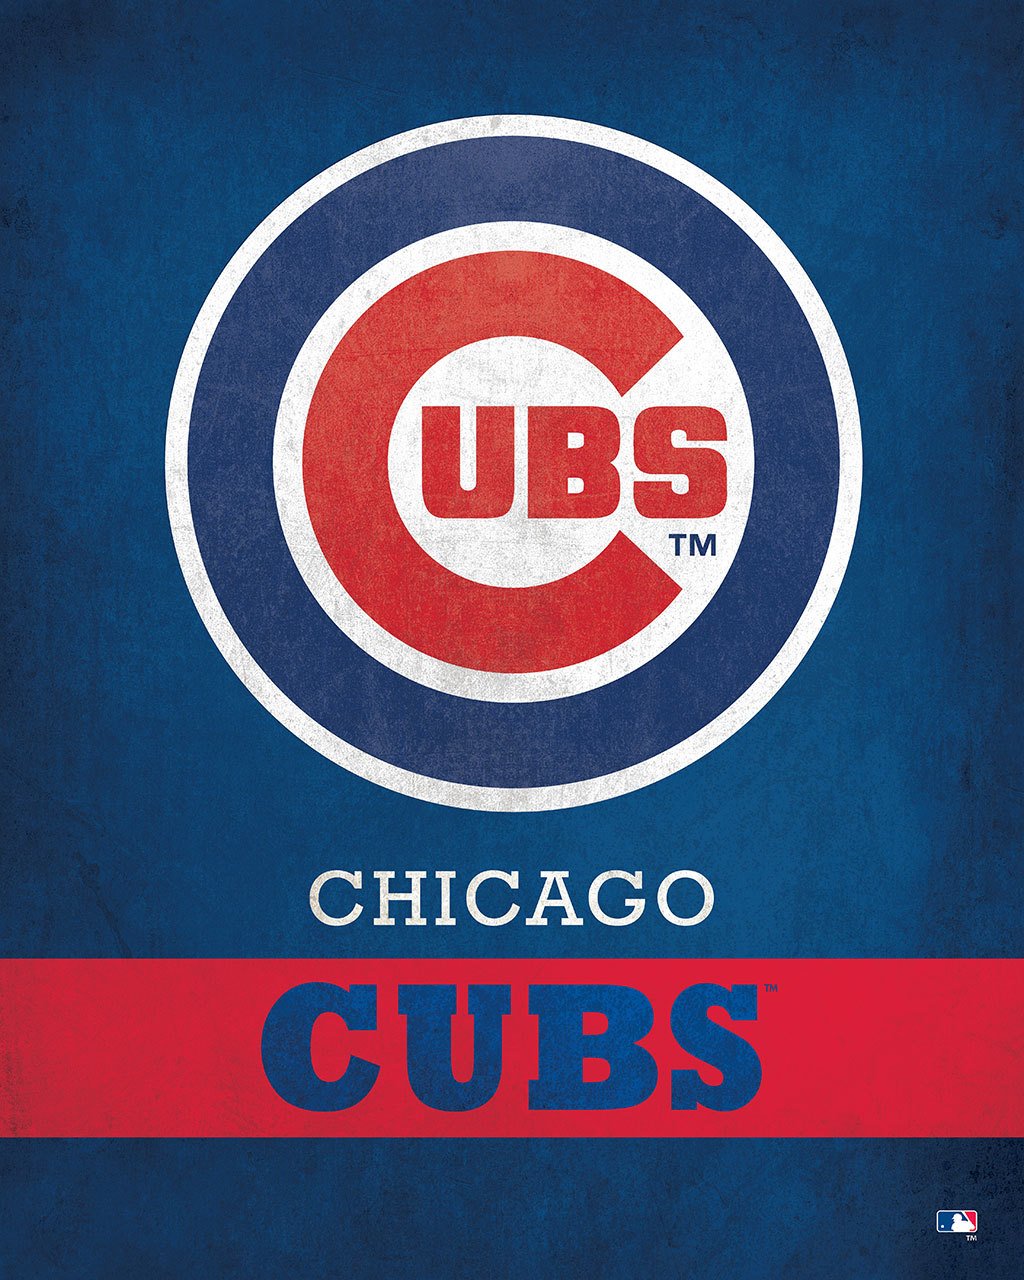 Chicago Cubs Logo - Chicago Cubs Logo - ScoreArt